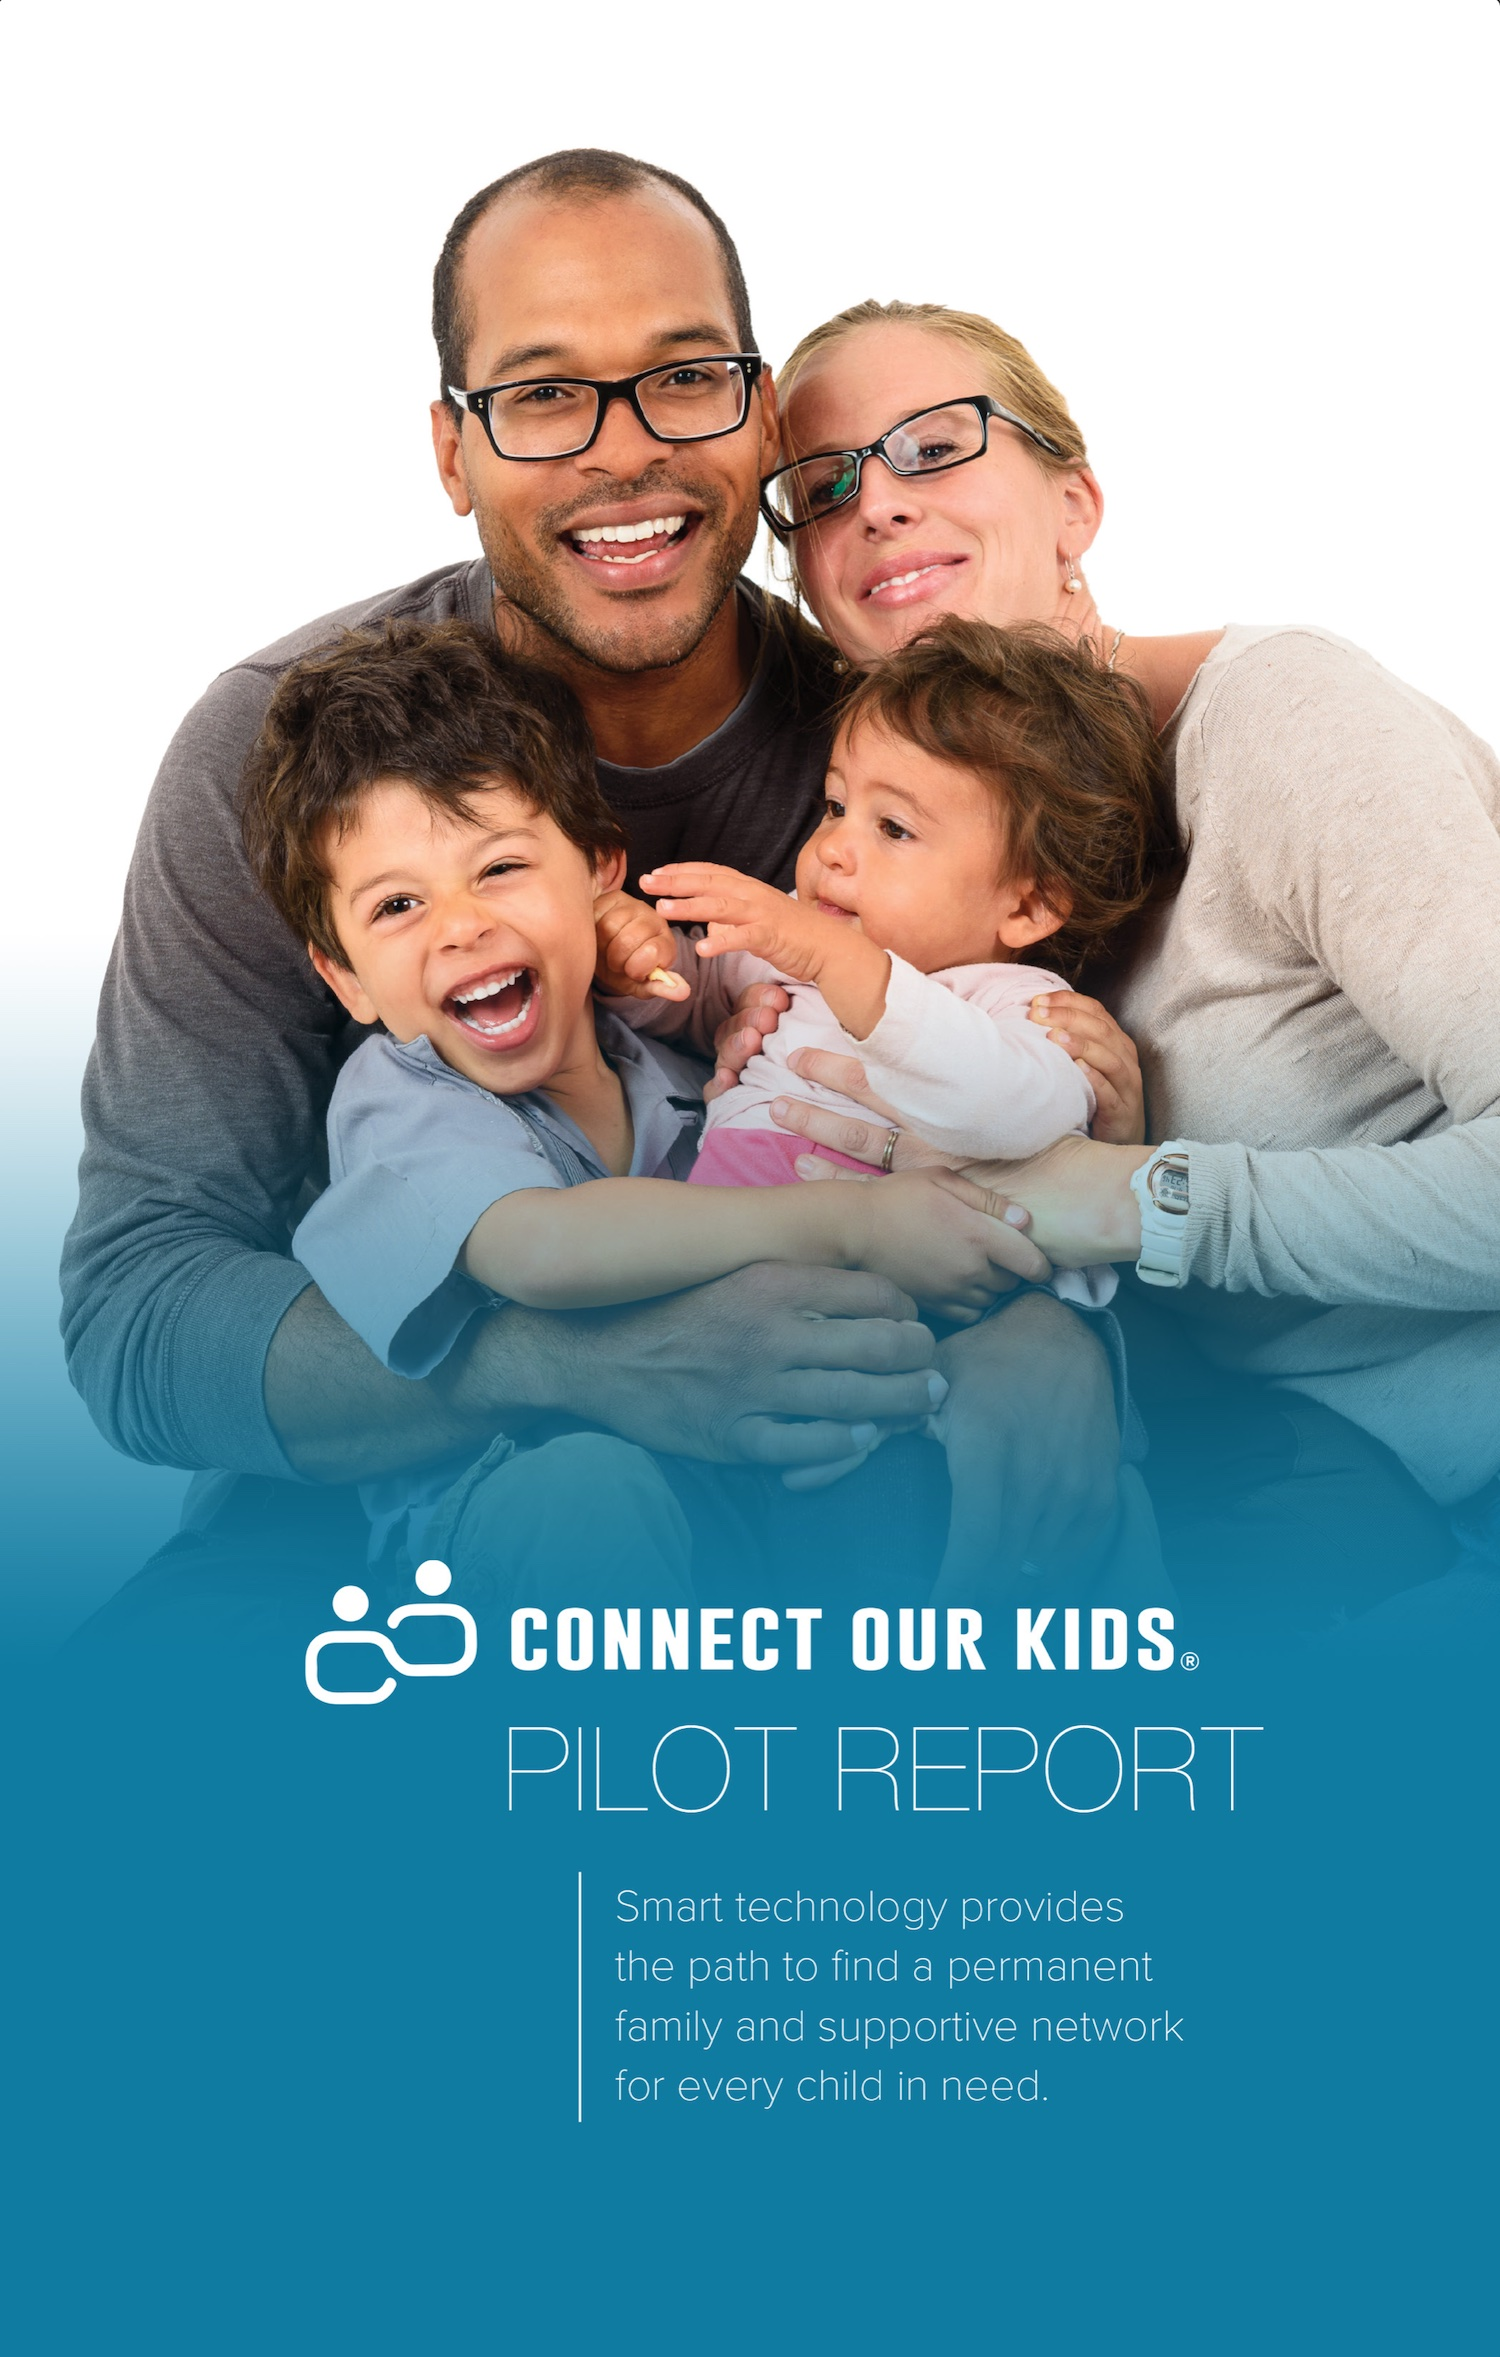 Connect Our Kids Pilot Report cover image.